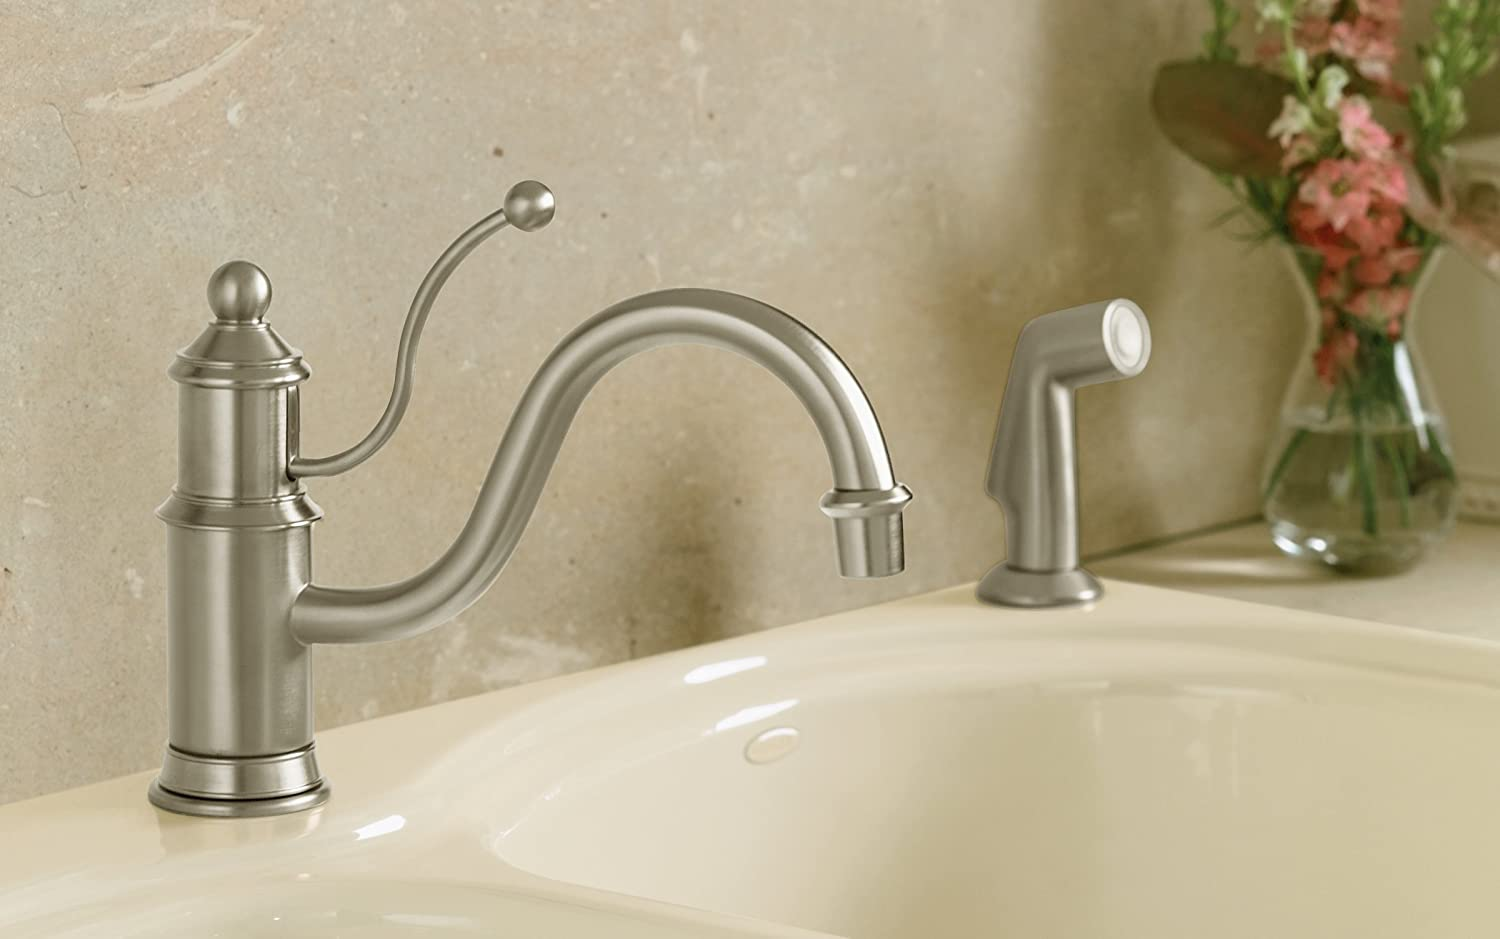 KOHLER K 169 BN Antique Single Control Kitchen Sink Faucet, Vibrant Brushed  Nickel   Touch On Kitchen Sink Faucets   Amazon.com